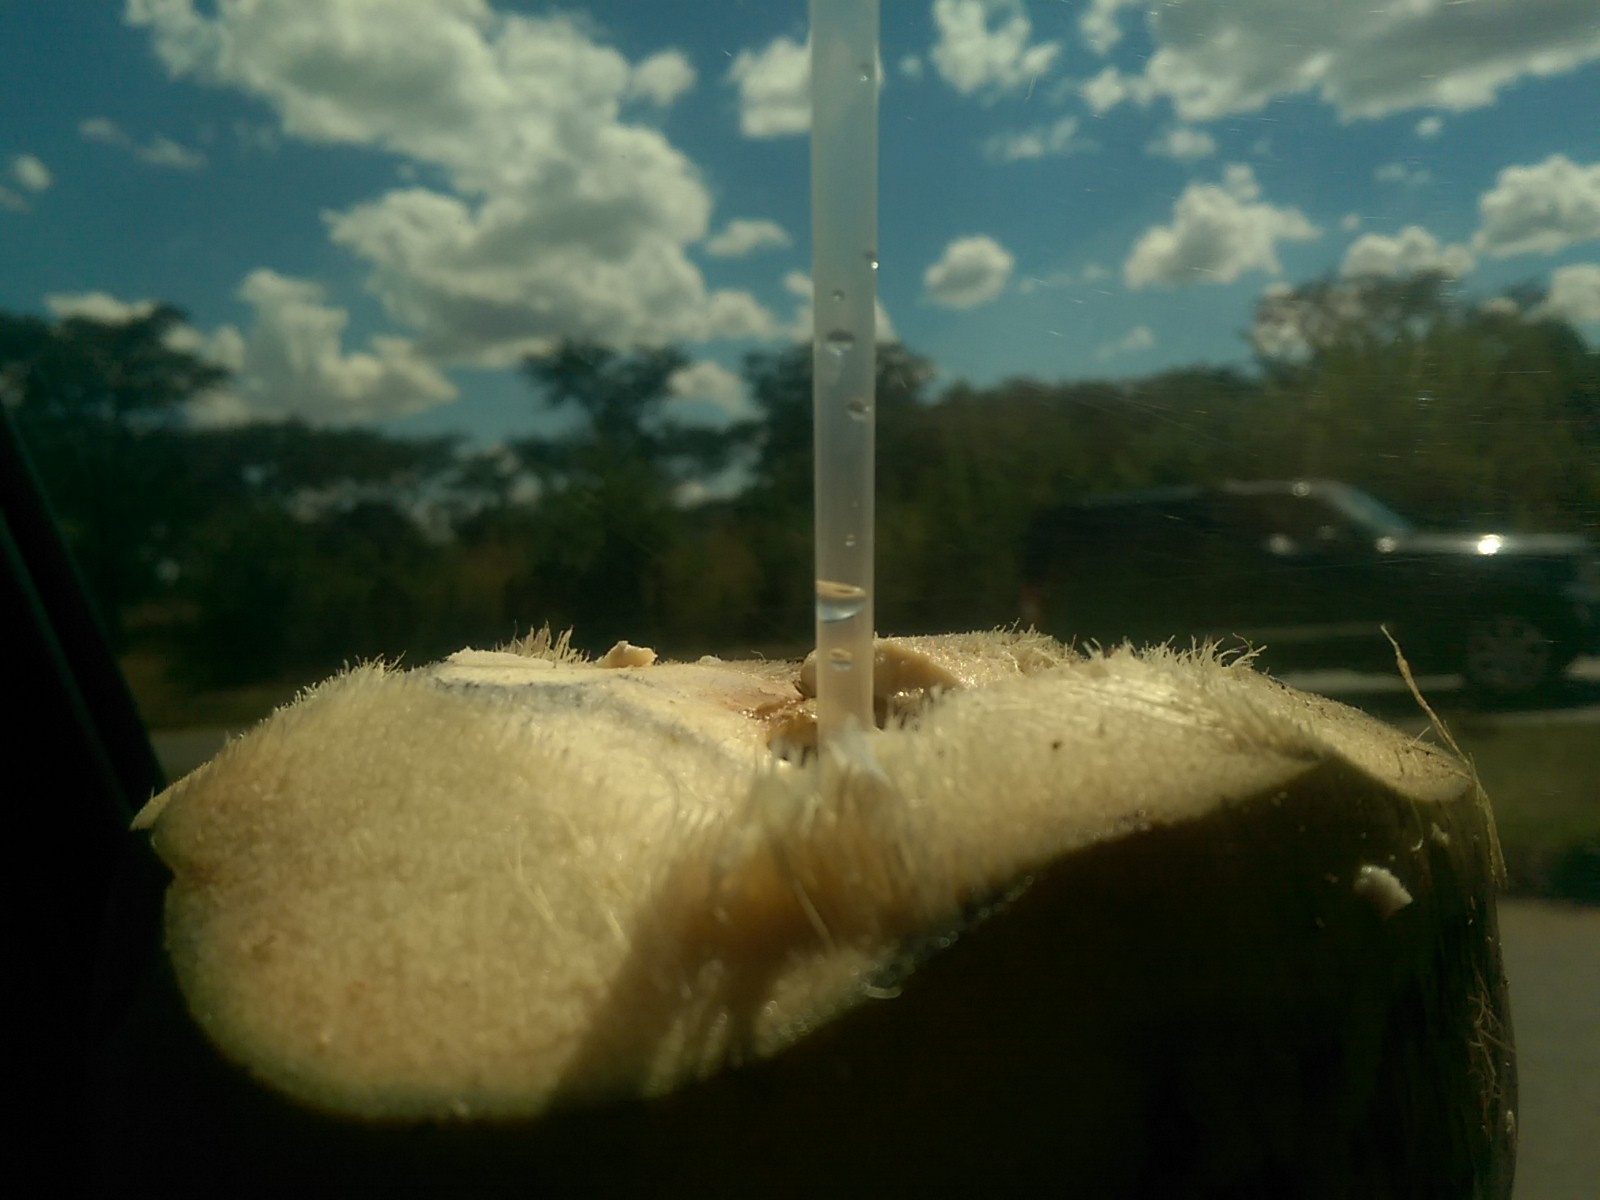 Closeup of a coconut with a straw, against an out of focus blue sky with clouds